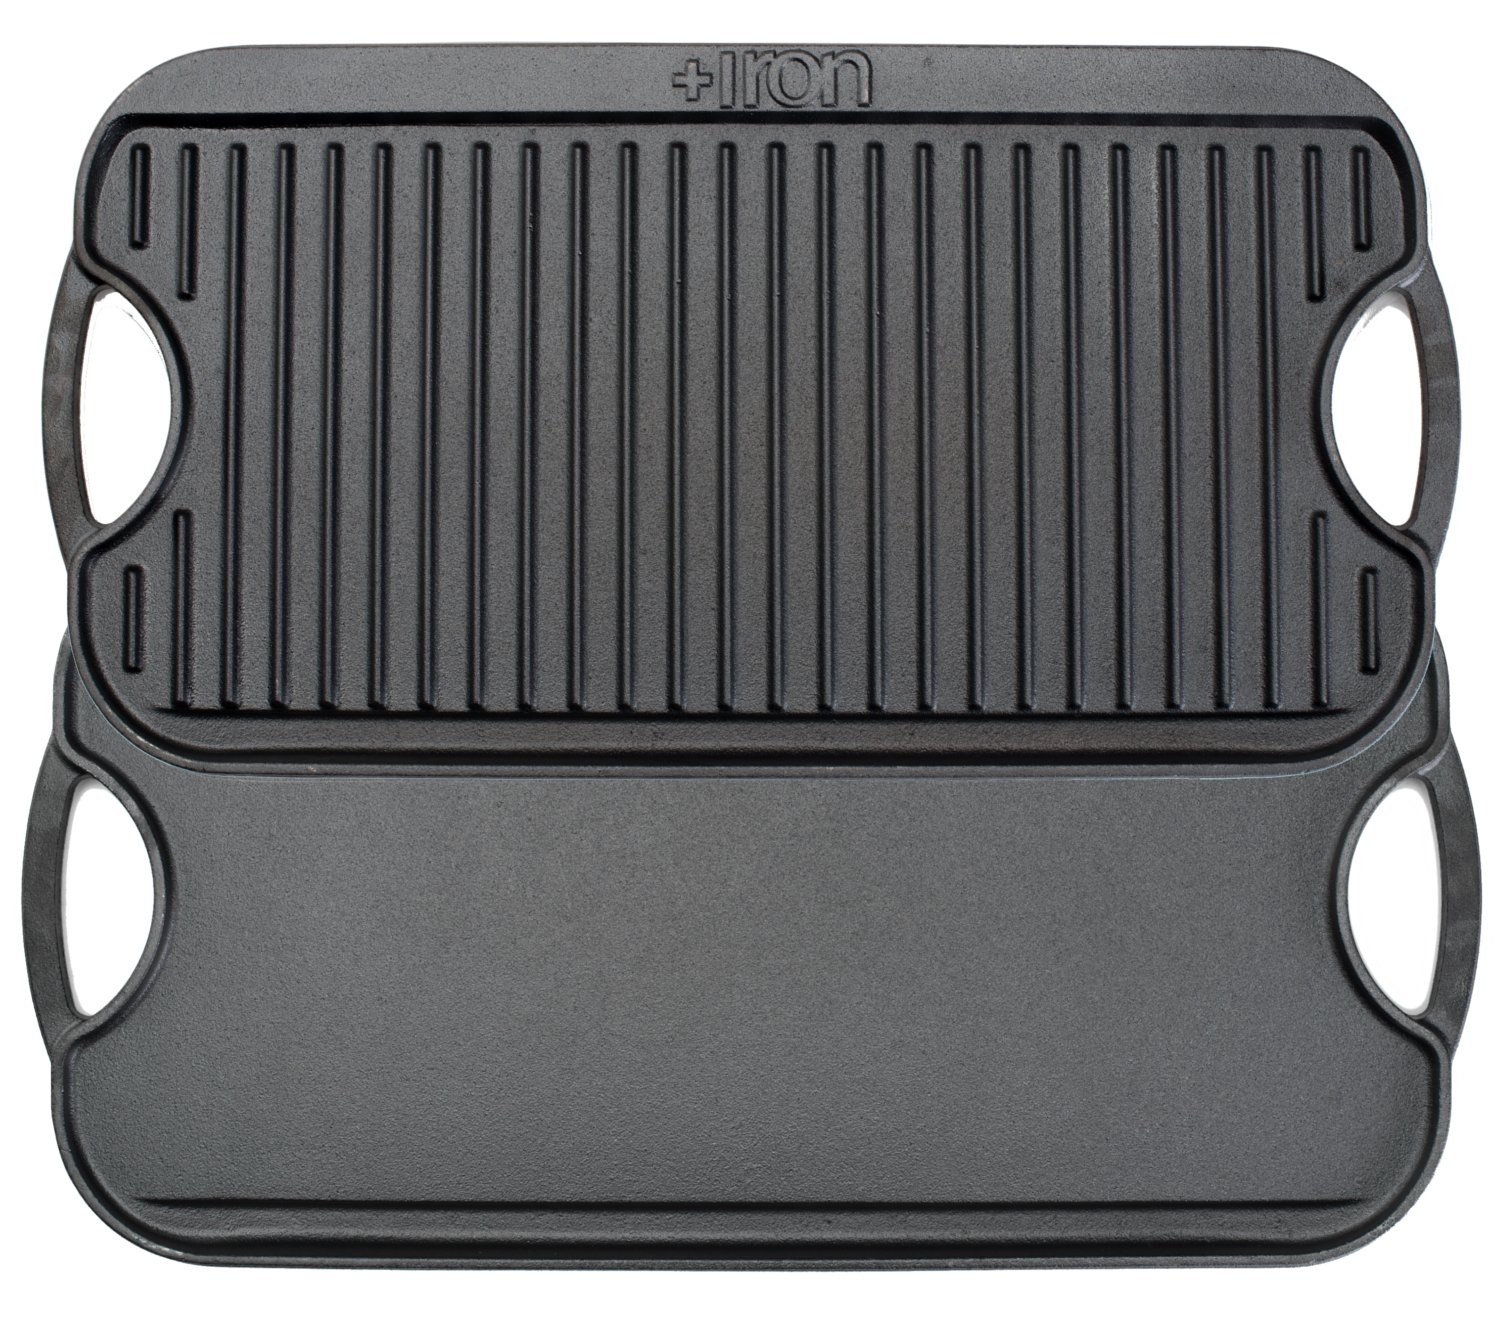 +Iron Griddle Cast Iron Reversible Grill/Griddle 20 inch x 10 inch